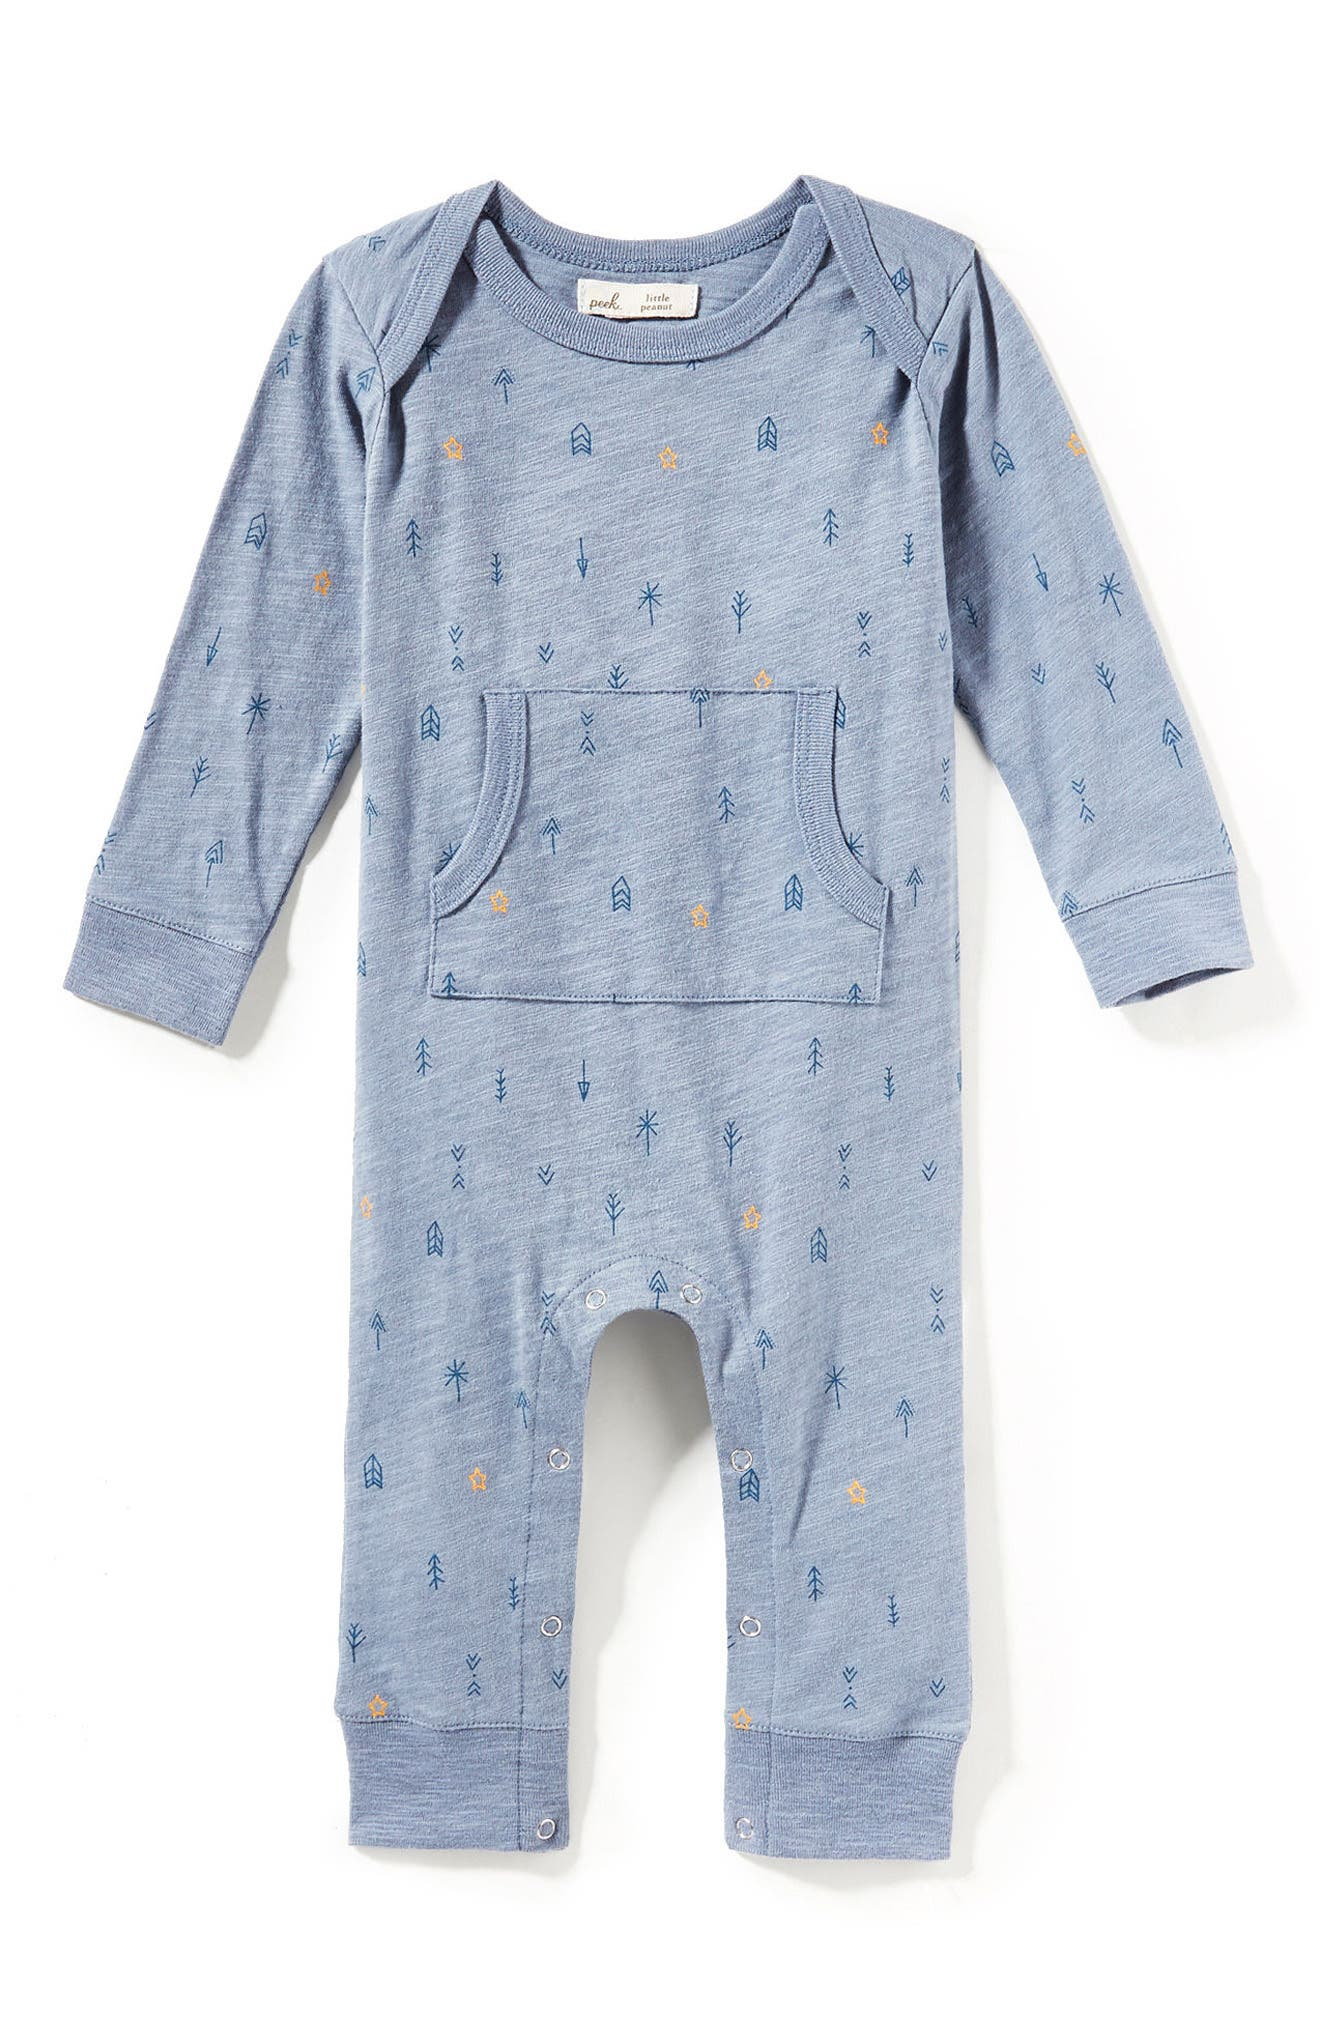 Peek Arrow Romper,                         Main,                         color, Steel Blue